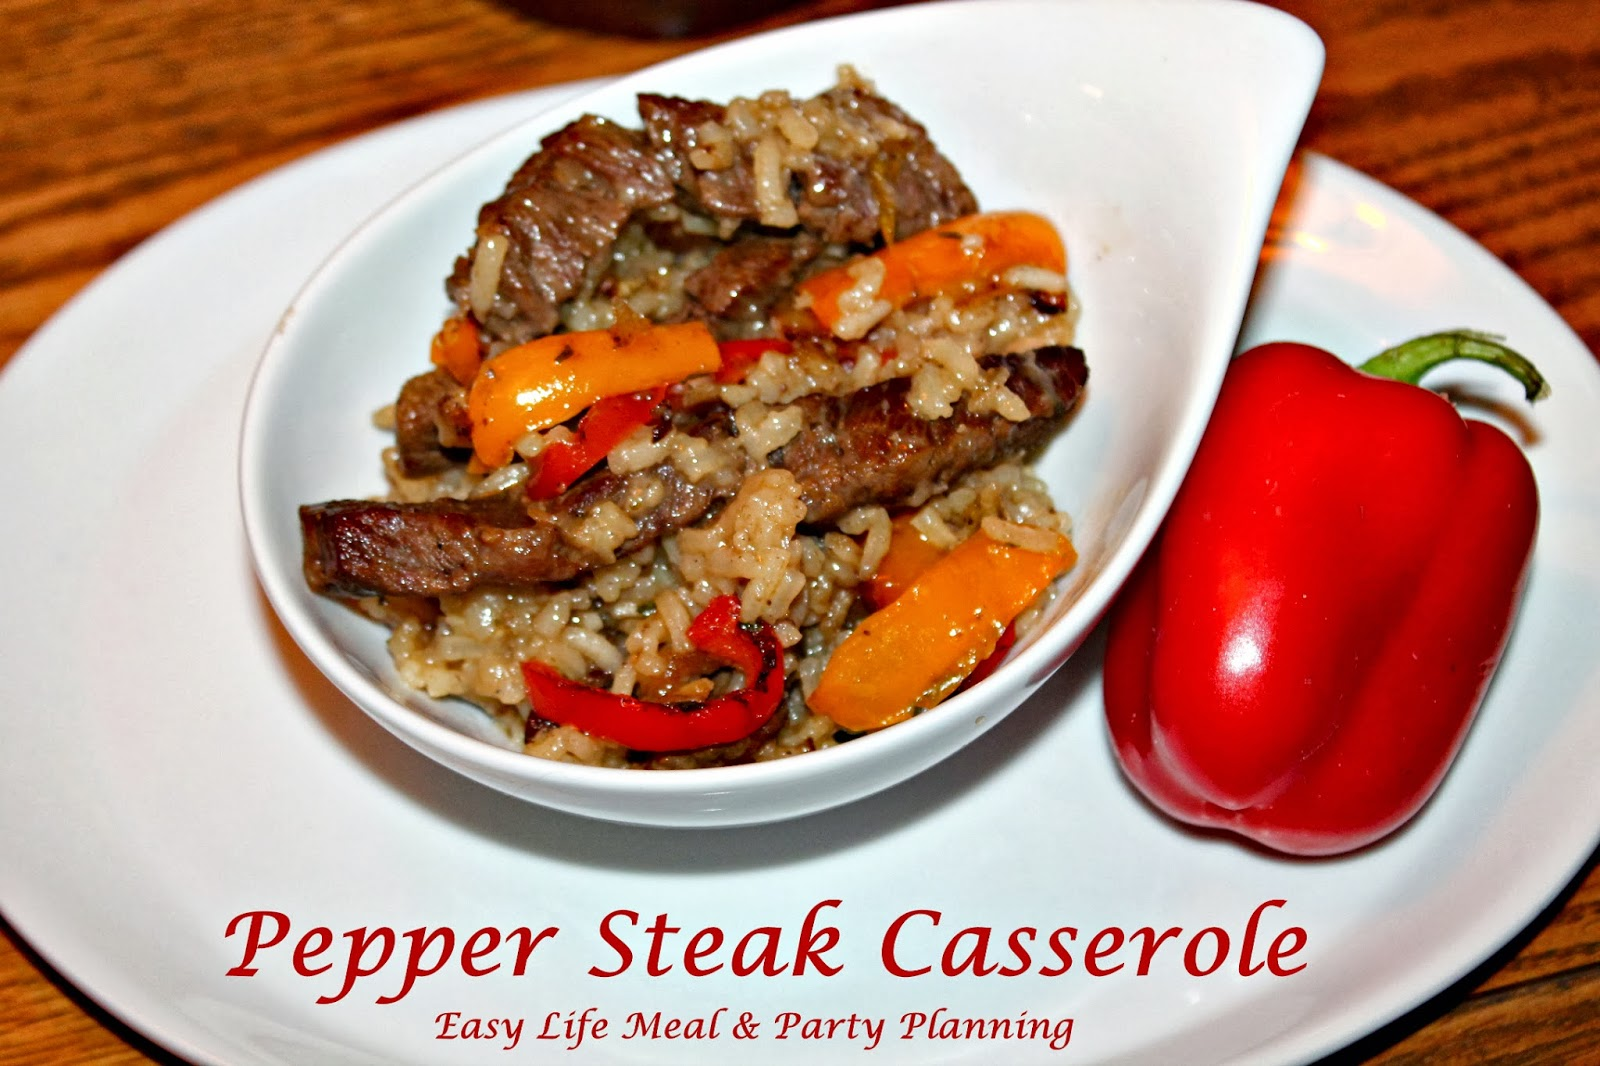 Pepper Steak Casserole - Easy Life Meal & Party Planning - a easy and savory casserole filled with rice, onions, peppers & beef